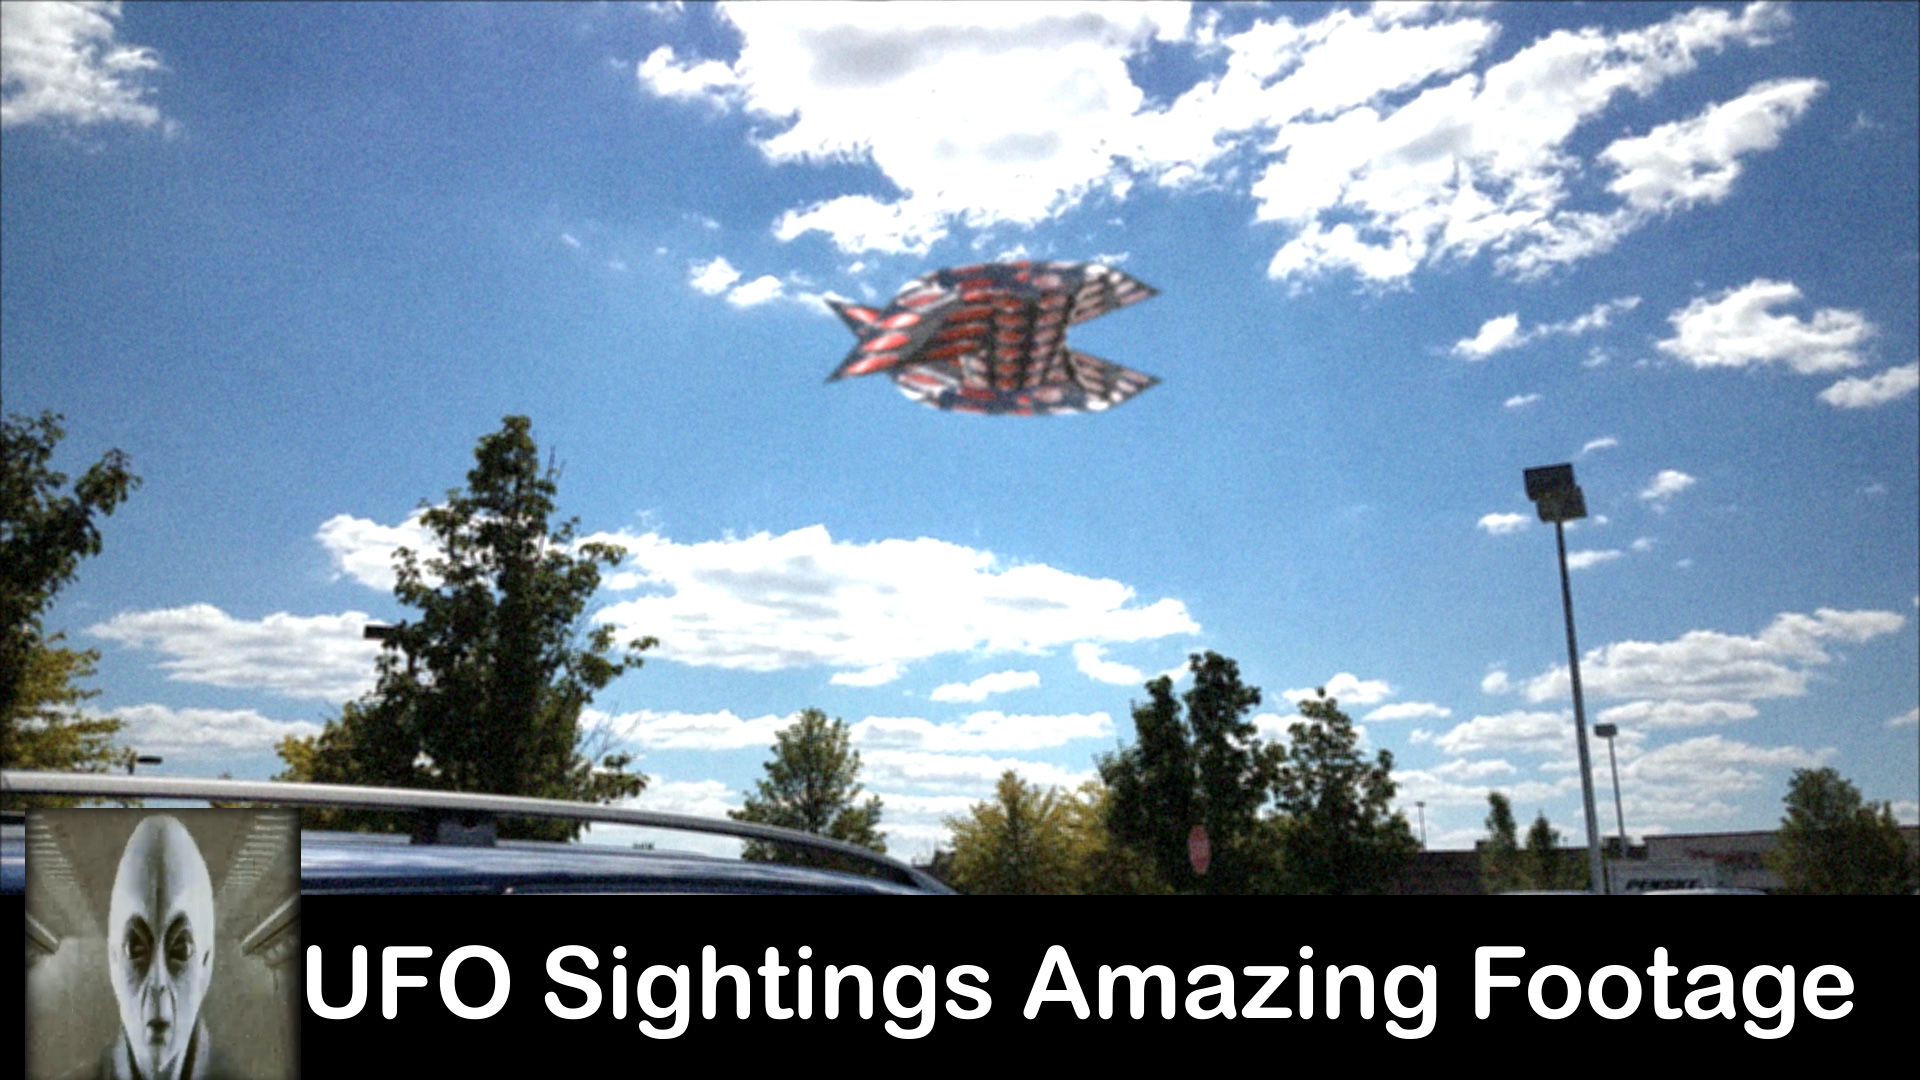 UFO Sightings Amazing Footage July 30th 2017